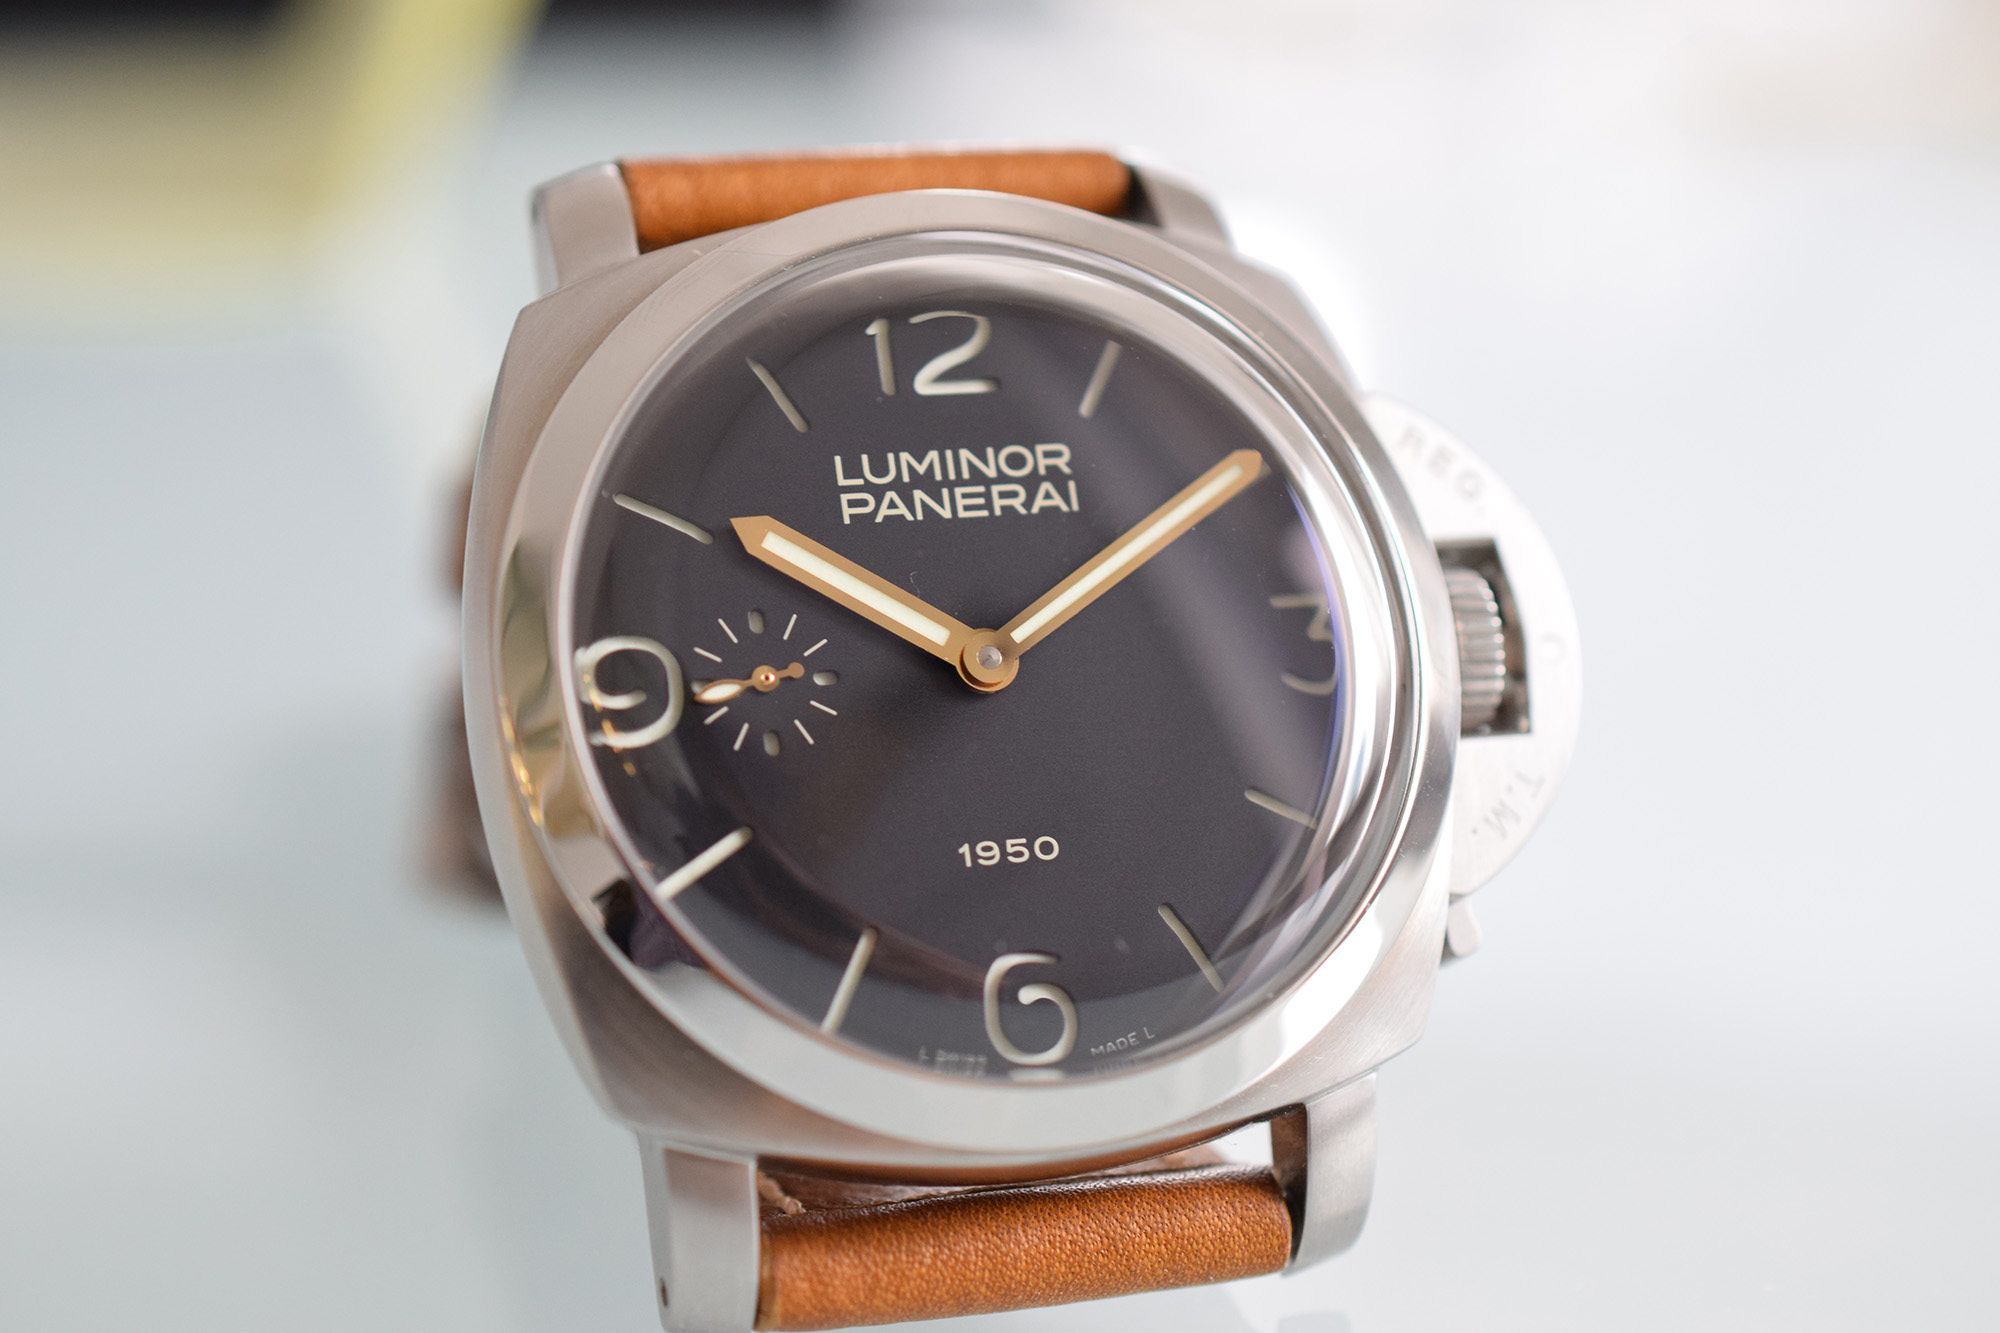 Panerai Luminor 1950 PAM 127 Special Edition